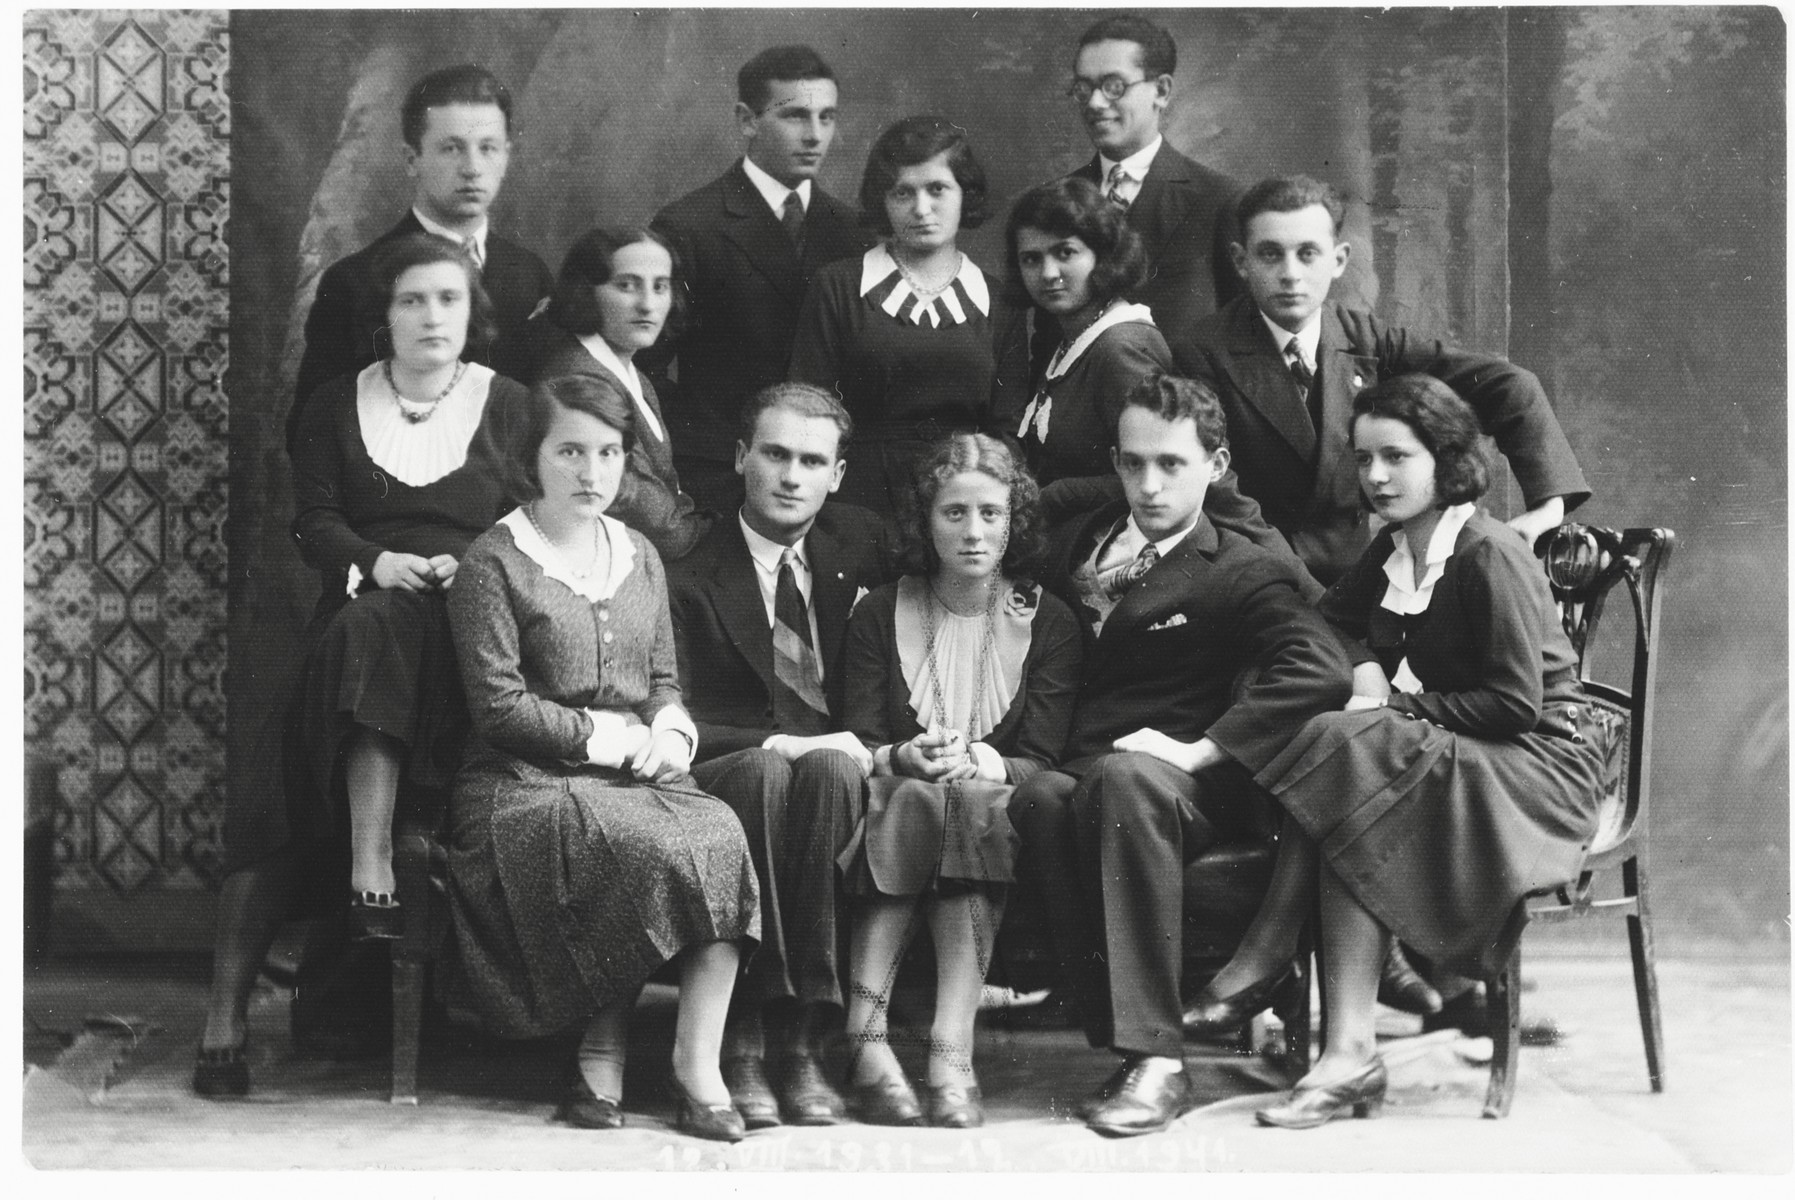 Studio portrait of a group of young adult Jewish friends.  Among those pictured is Chaja Ringelheim (front row, center).